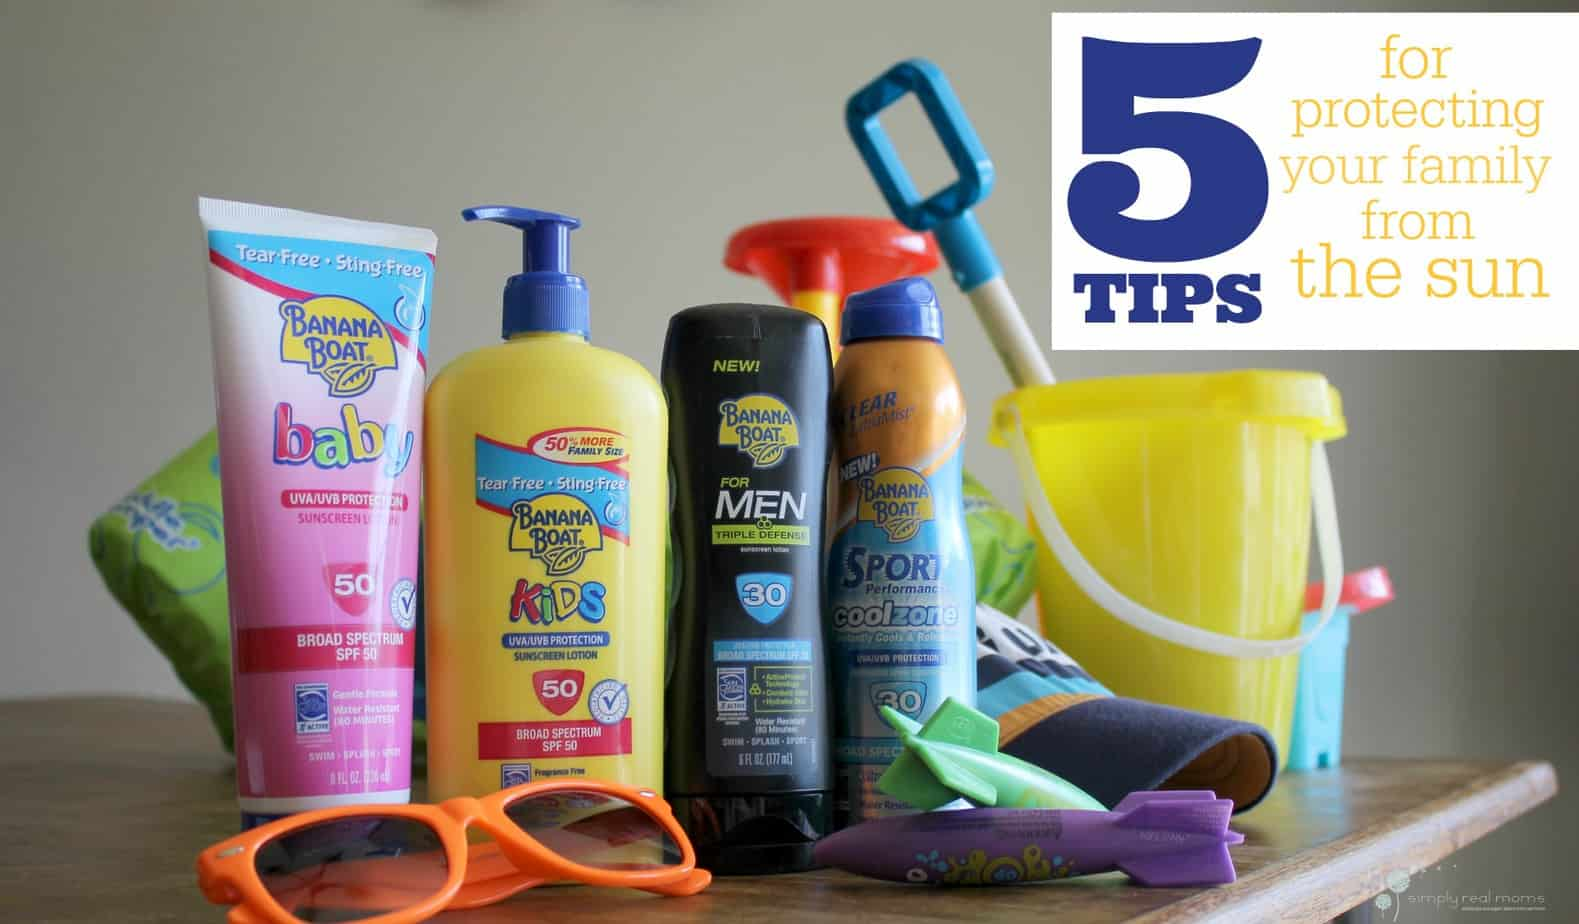 5 Tips For Protecting Your Family From The Sun 3